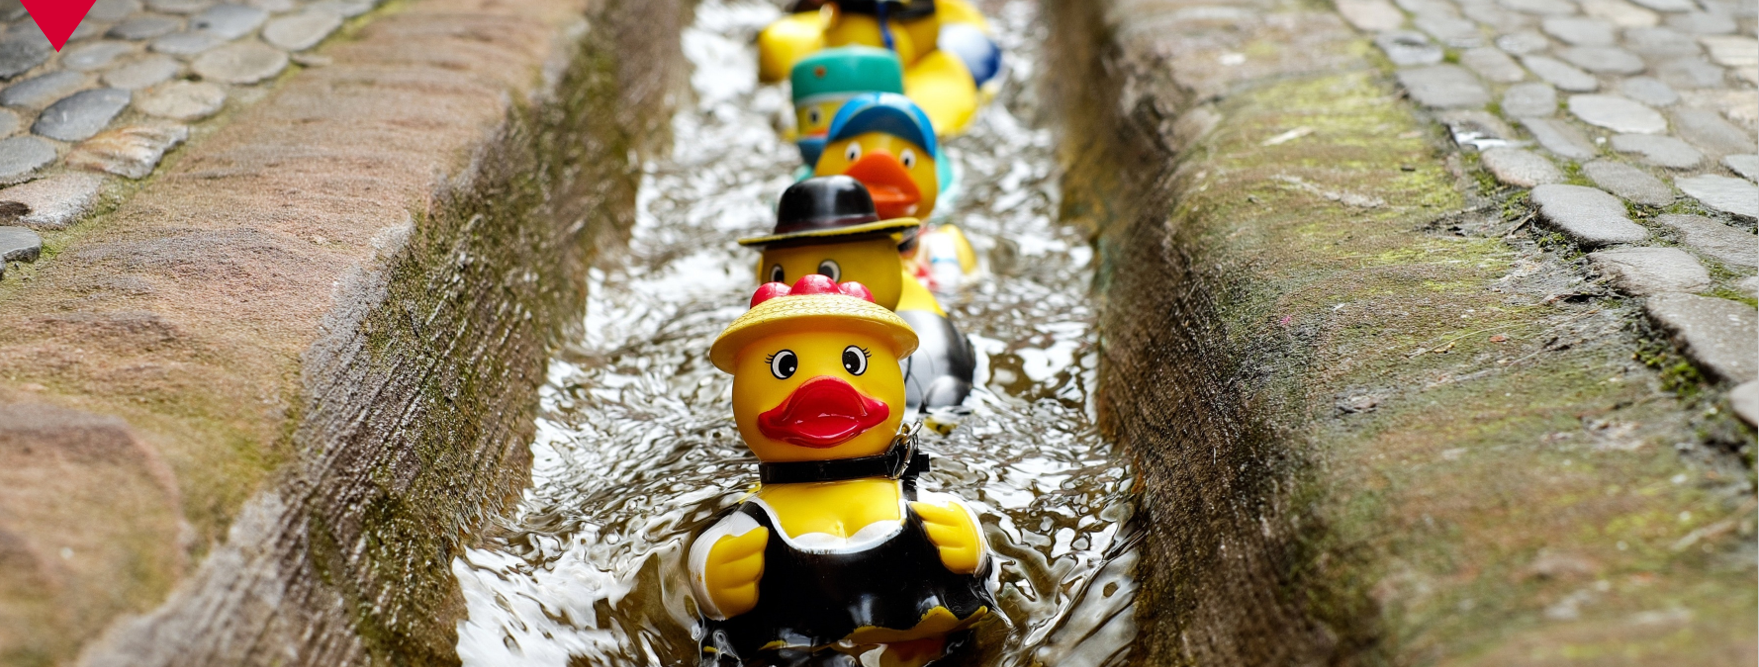 Get Your Event Ducks in a Row | Focus Rooms | Blog